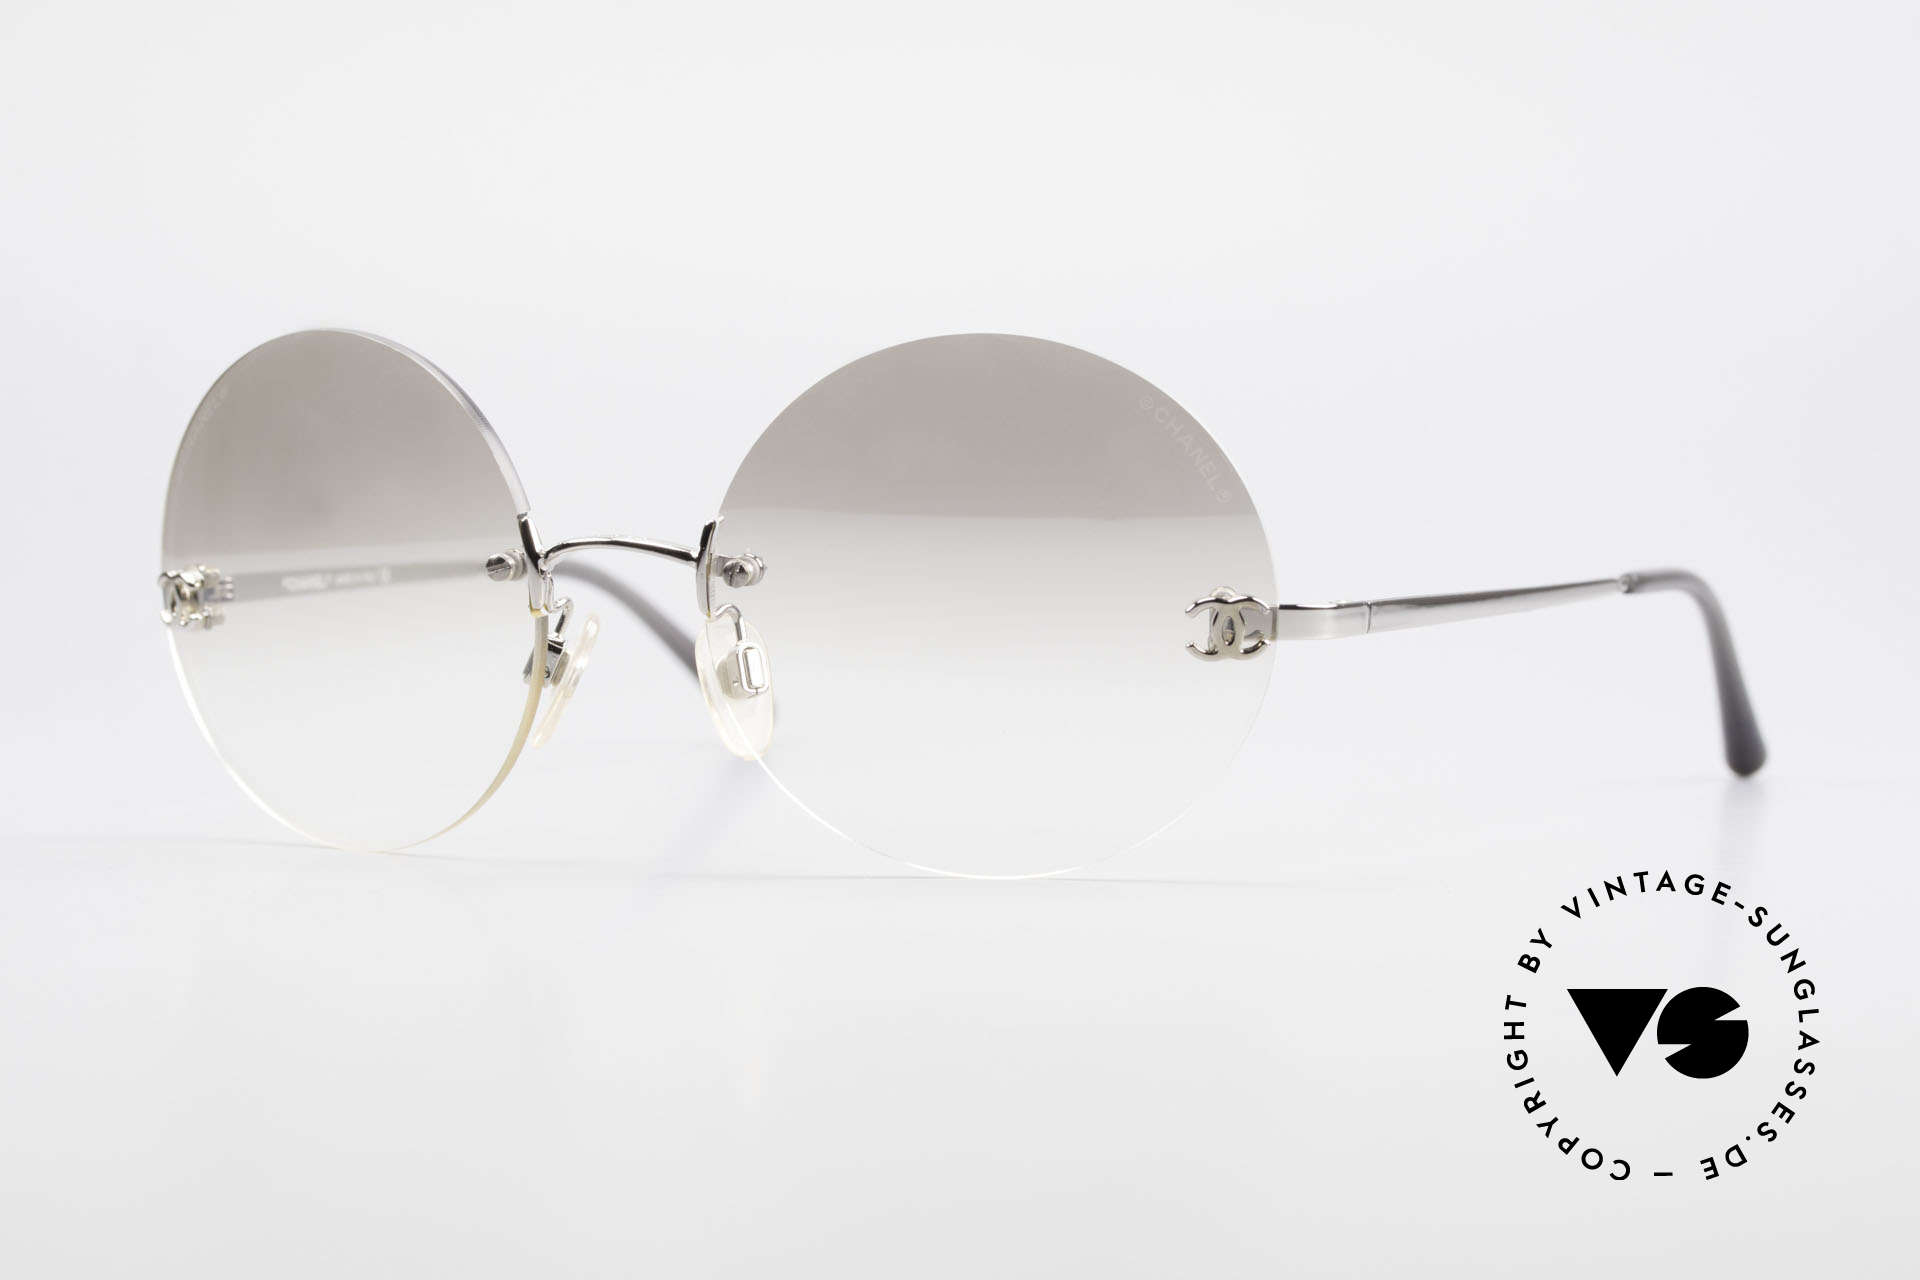 Chanel 4056 Round Luxury Sunglasses 90's, rare CHANEL shades, model 4056 in Medium size 53-18, Made for Men and Women